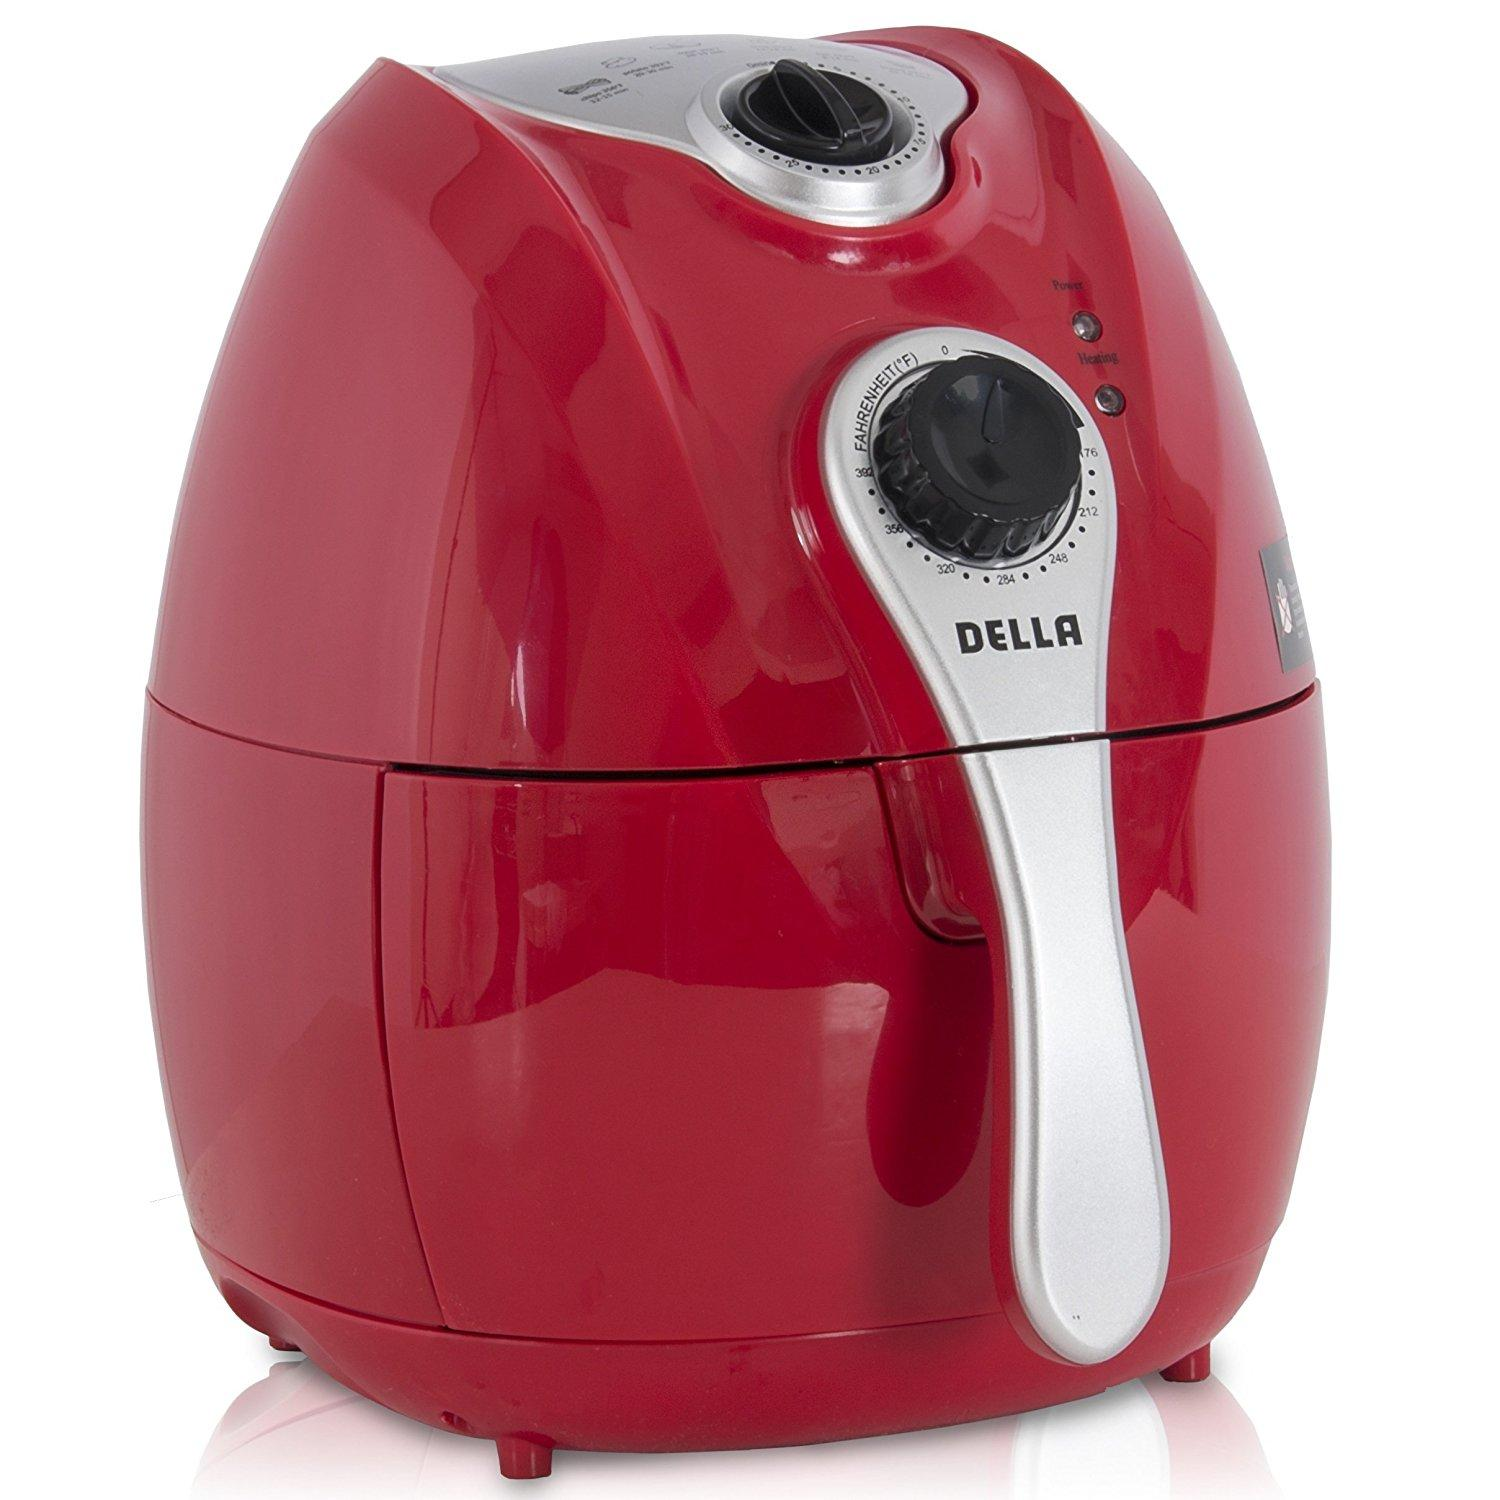 Della Electric Air Fryer